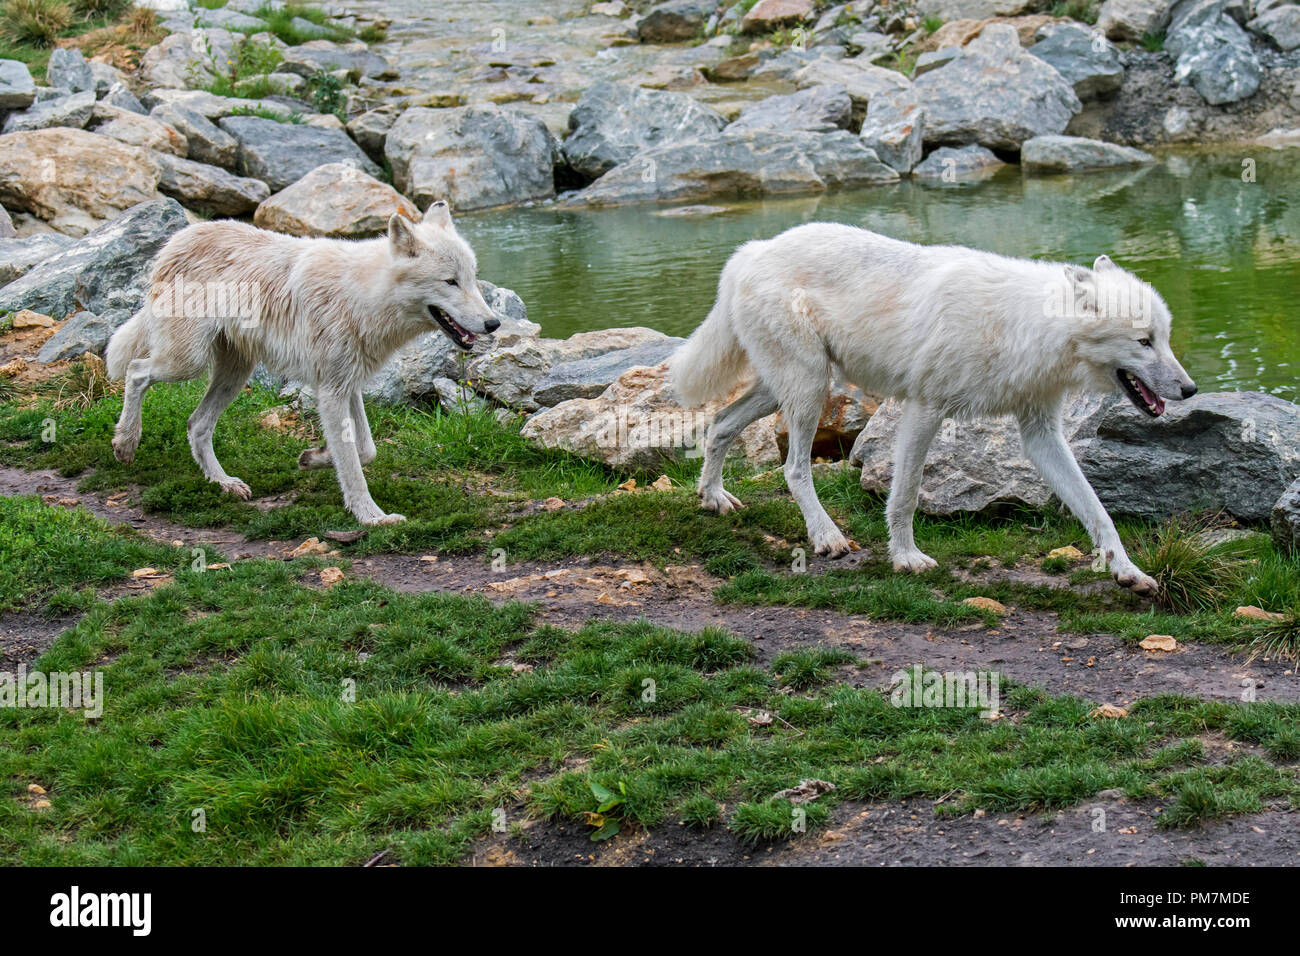 Two Canadian Arctic wolves / white wolves / Polar wolf (Canis lupus arctos), native to Canada, hunting along riverbank - Stock Image